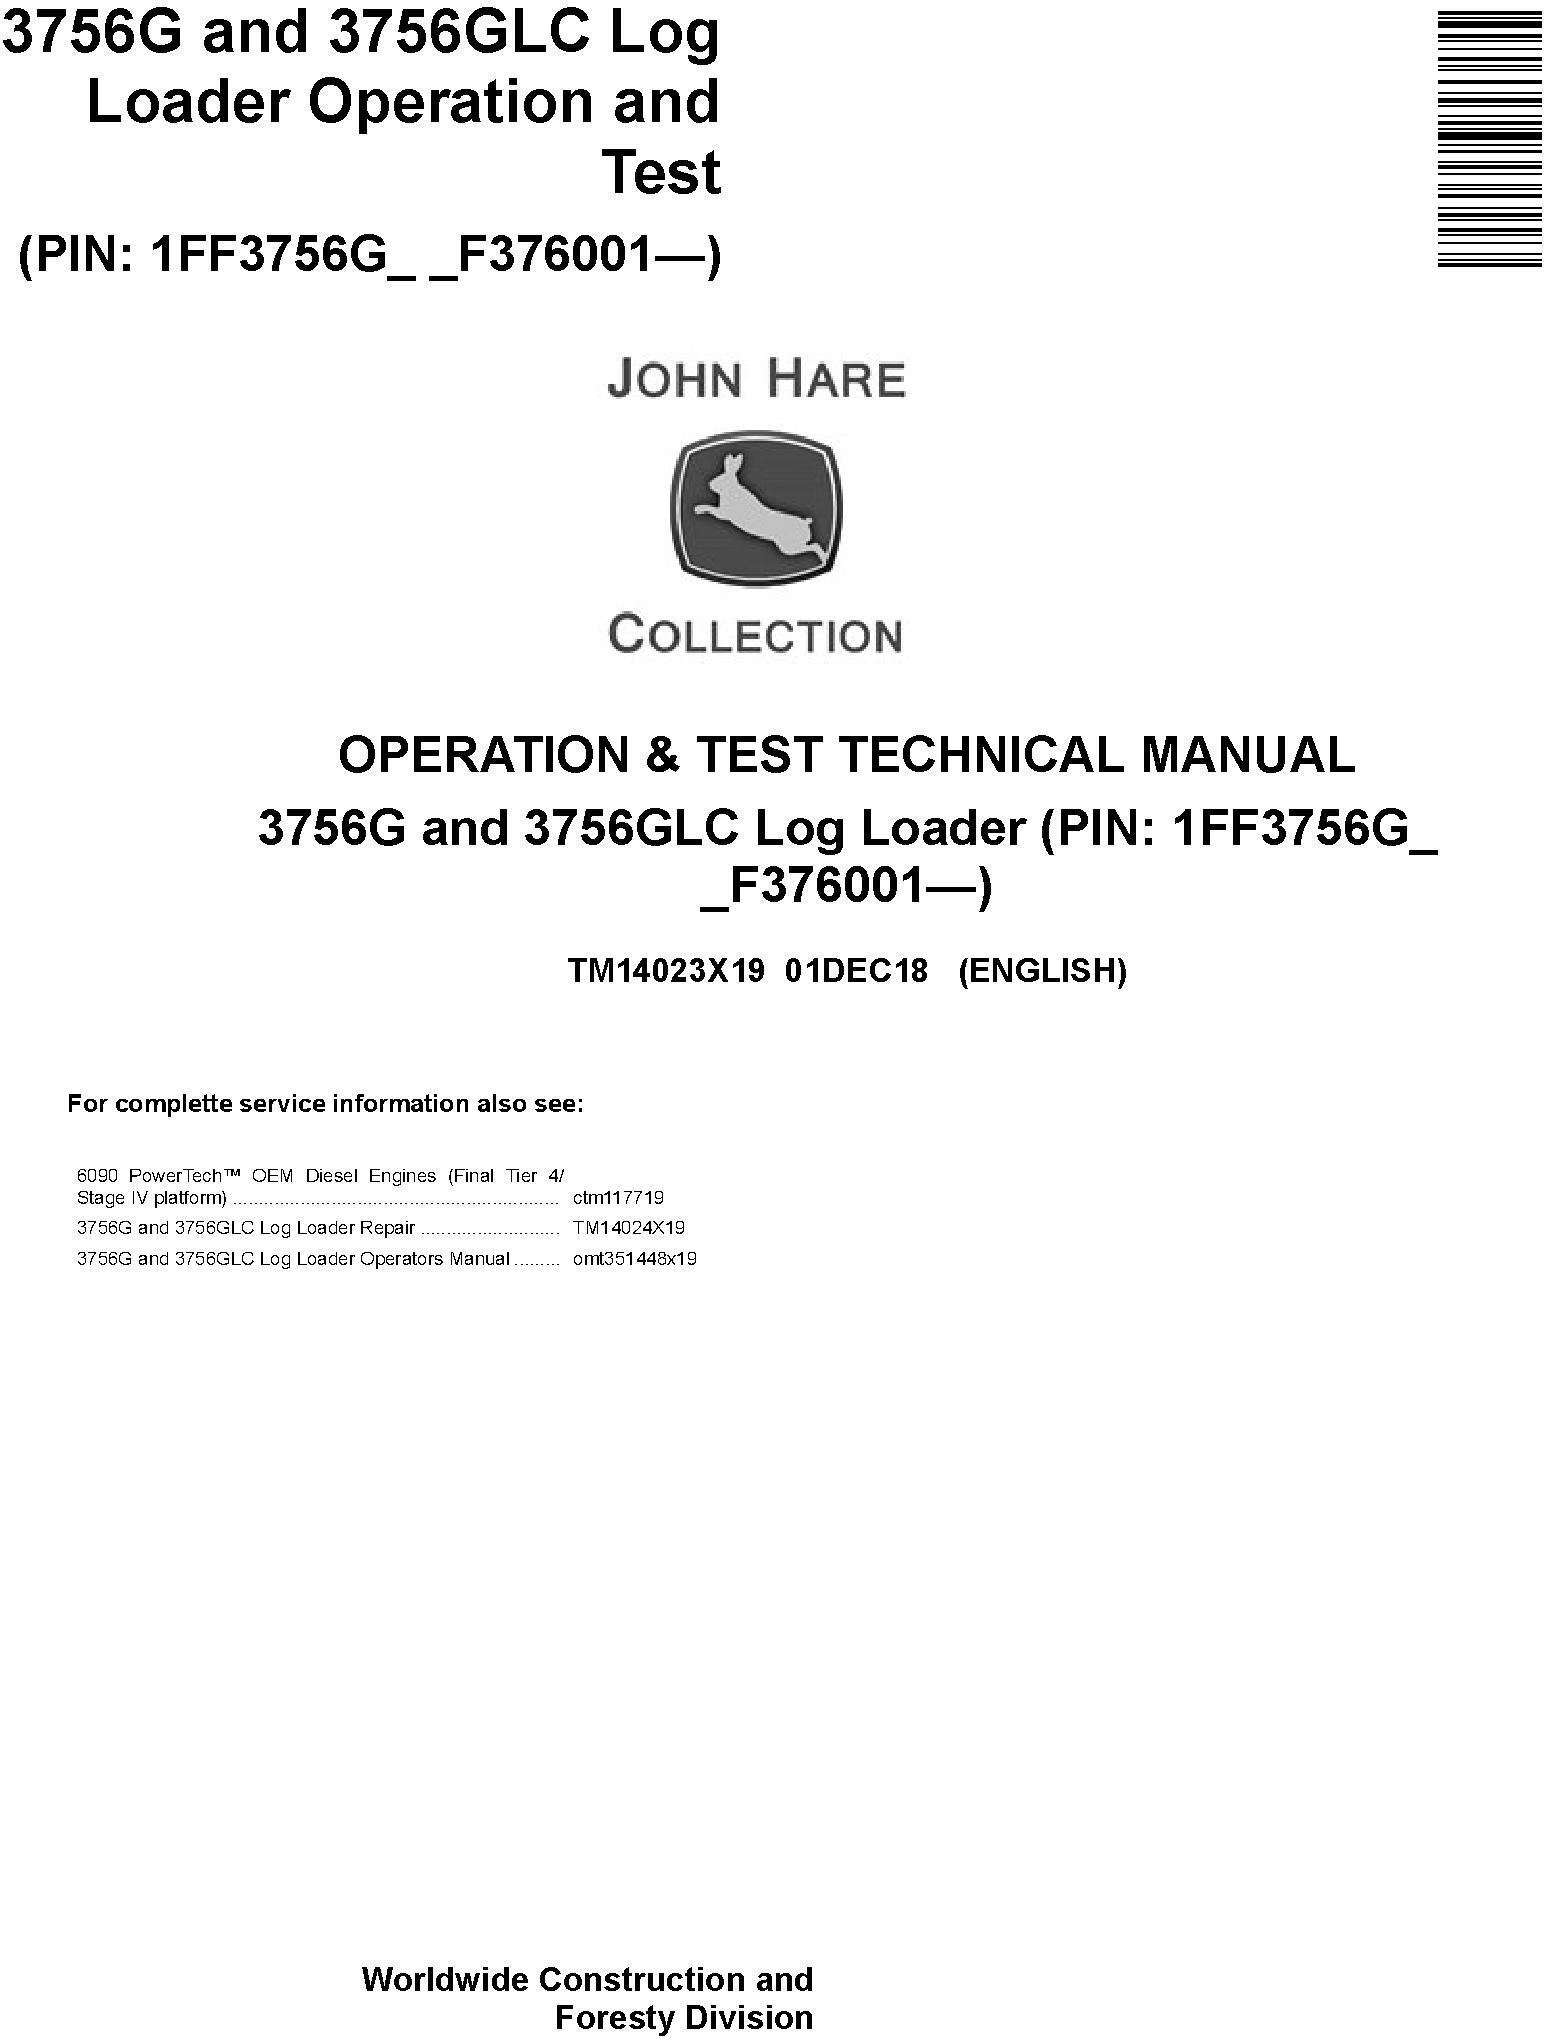 John Deere 3756G, 3756GLC (SN. F376001-) Log Loader Operation & Test Technical Manual (TM14023X19) - 19192